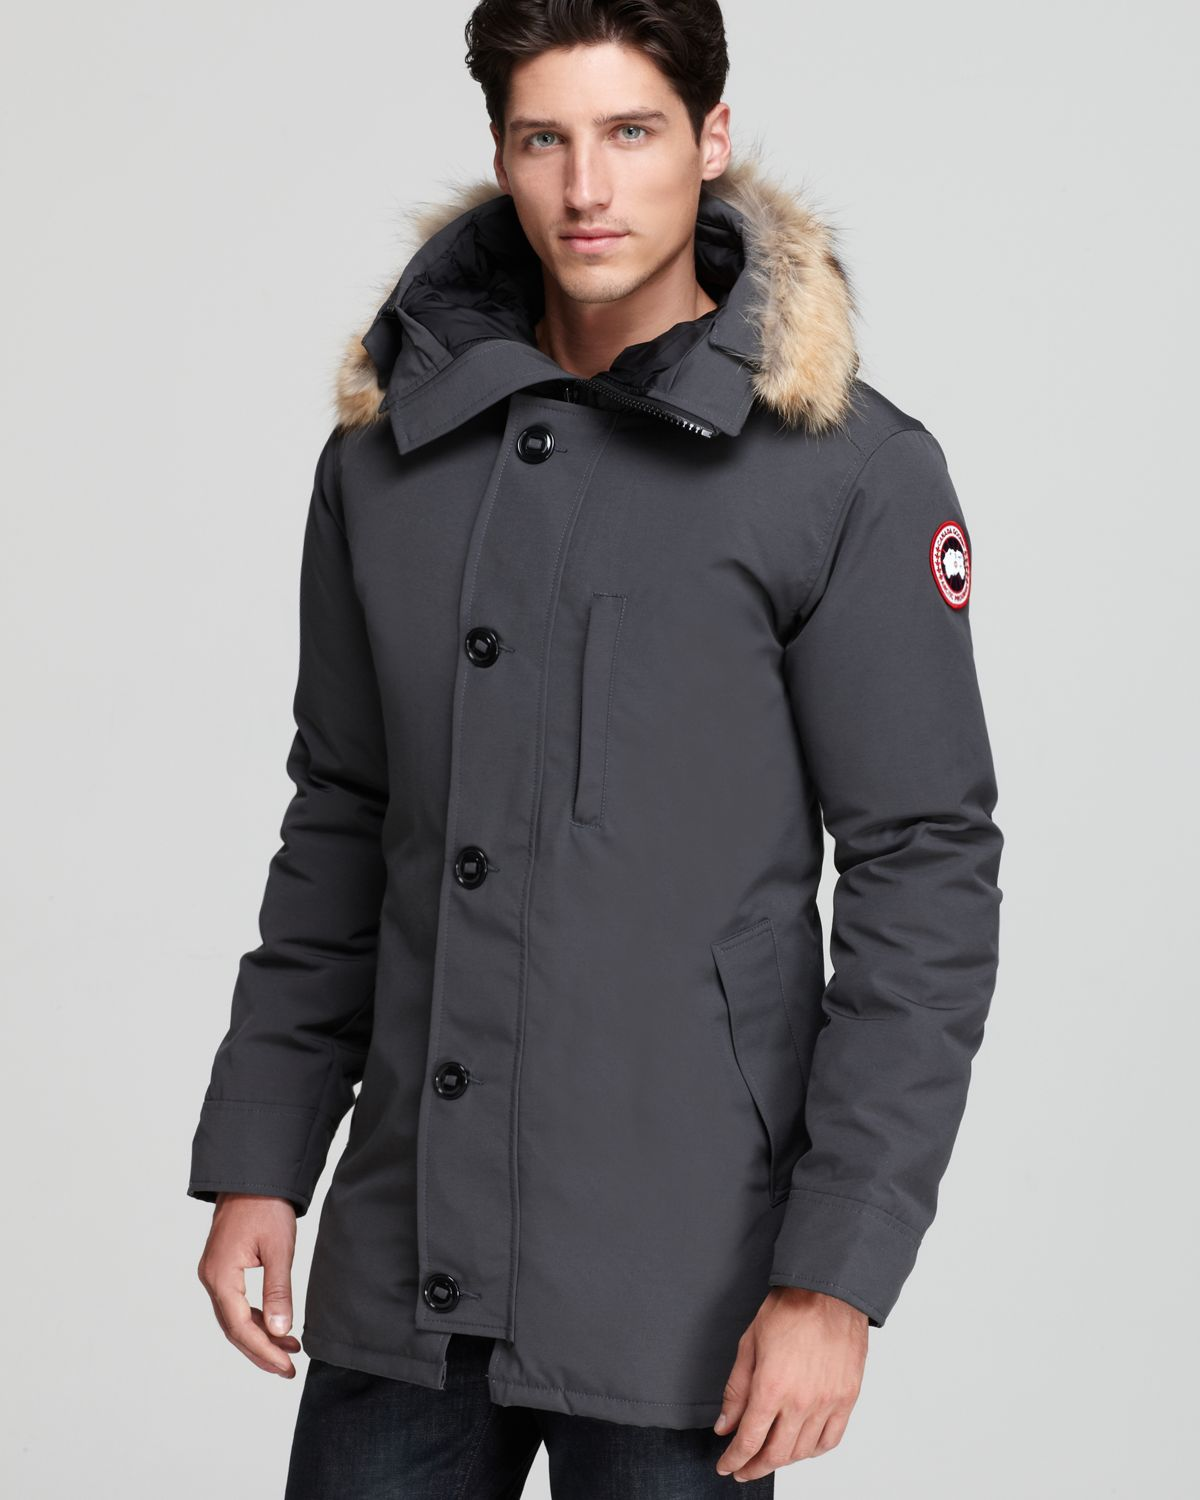 Canada Goose produces extreme weather outerwear since Discover high quality jackets, parkas and accessories designed for women, men and kids. Canada Goose. Canada Goose. Free shipping and returns on all orders. Details. Free shipping and returns on all orders. Details.